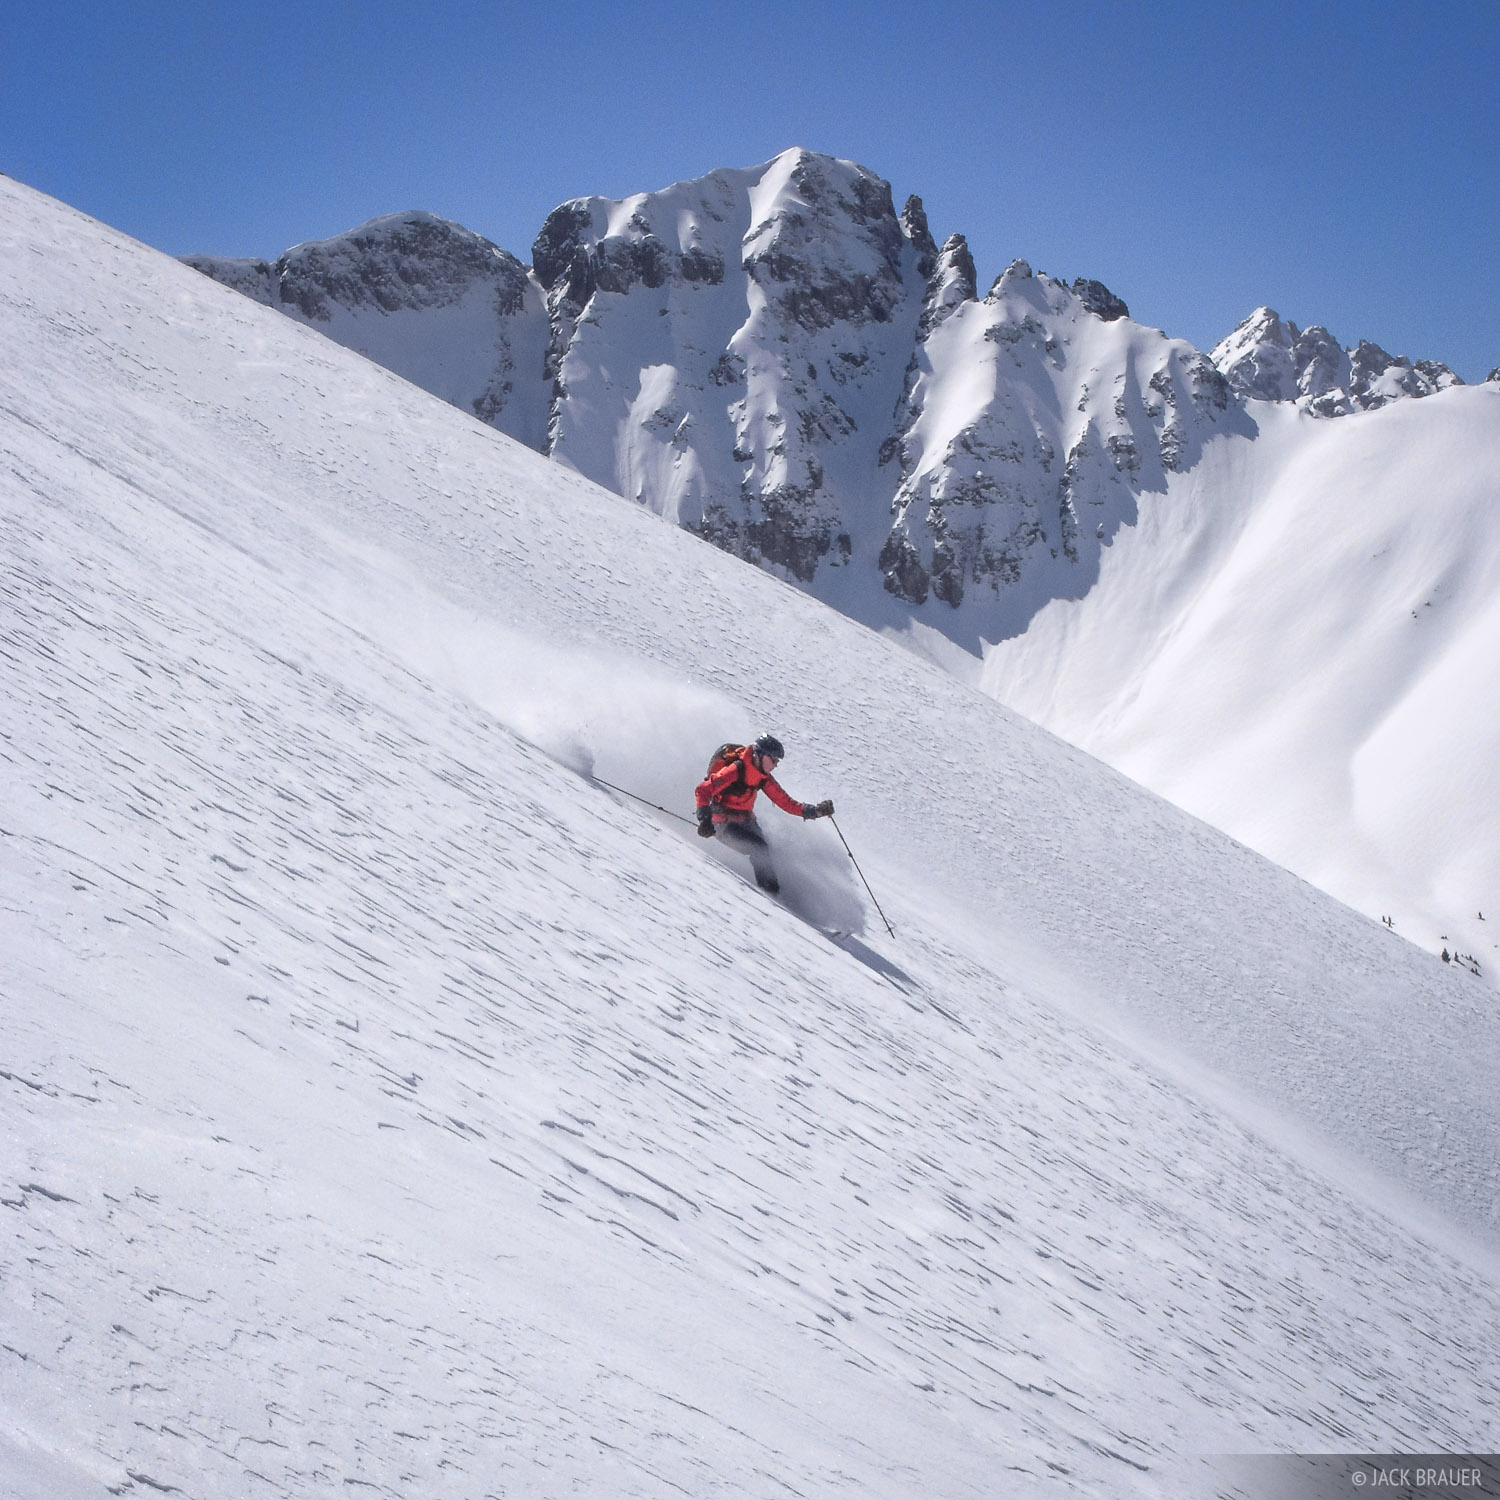 Backcountry skiing down a large steep face in the San Juans - March. Skiier: Ann Driggers.